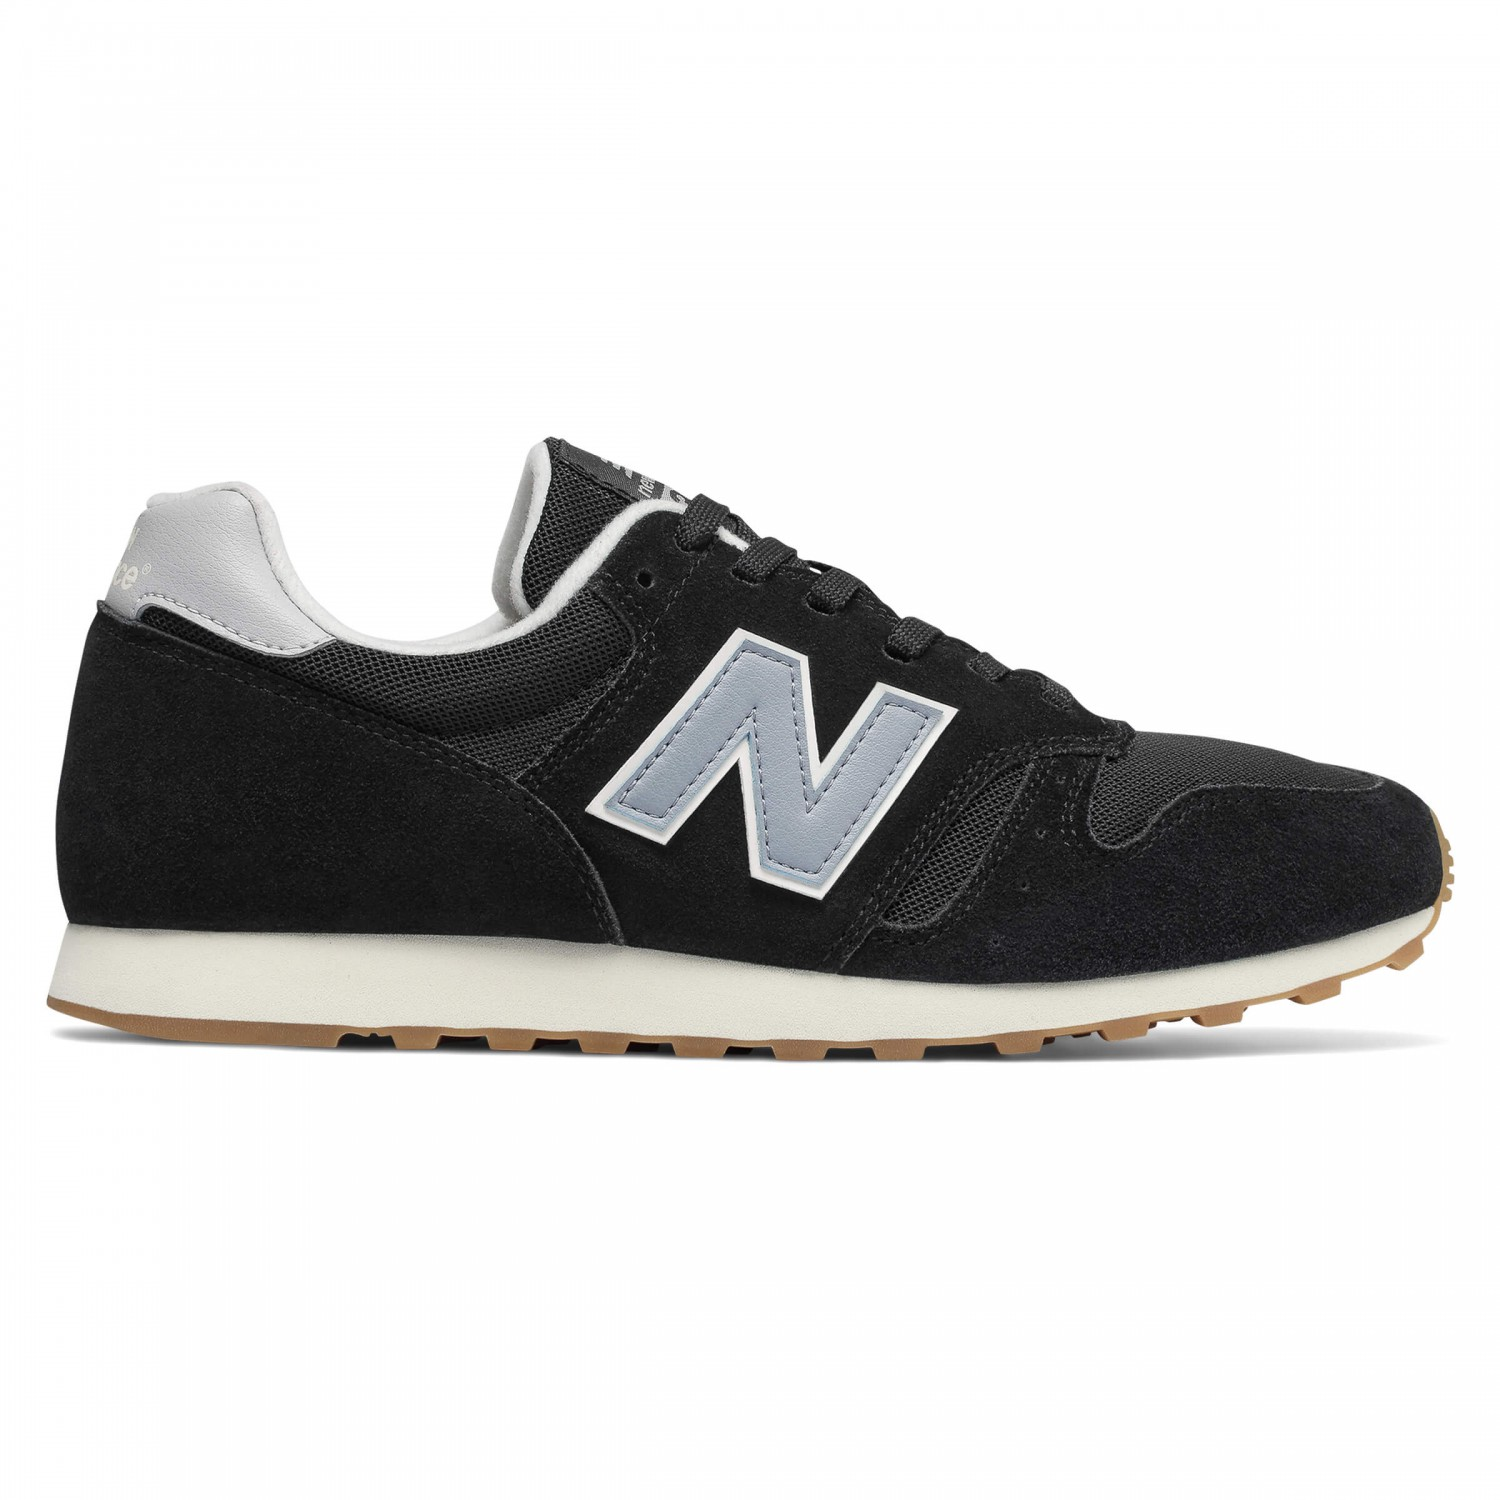 New Balance - Sneakers Bas ML373 - Sneaker Black / Blue